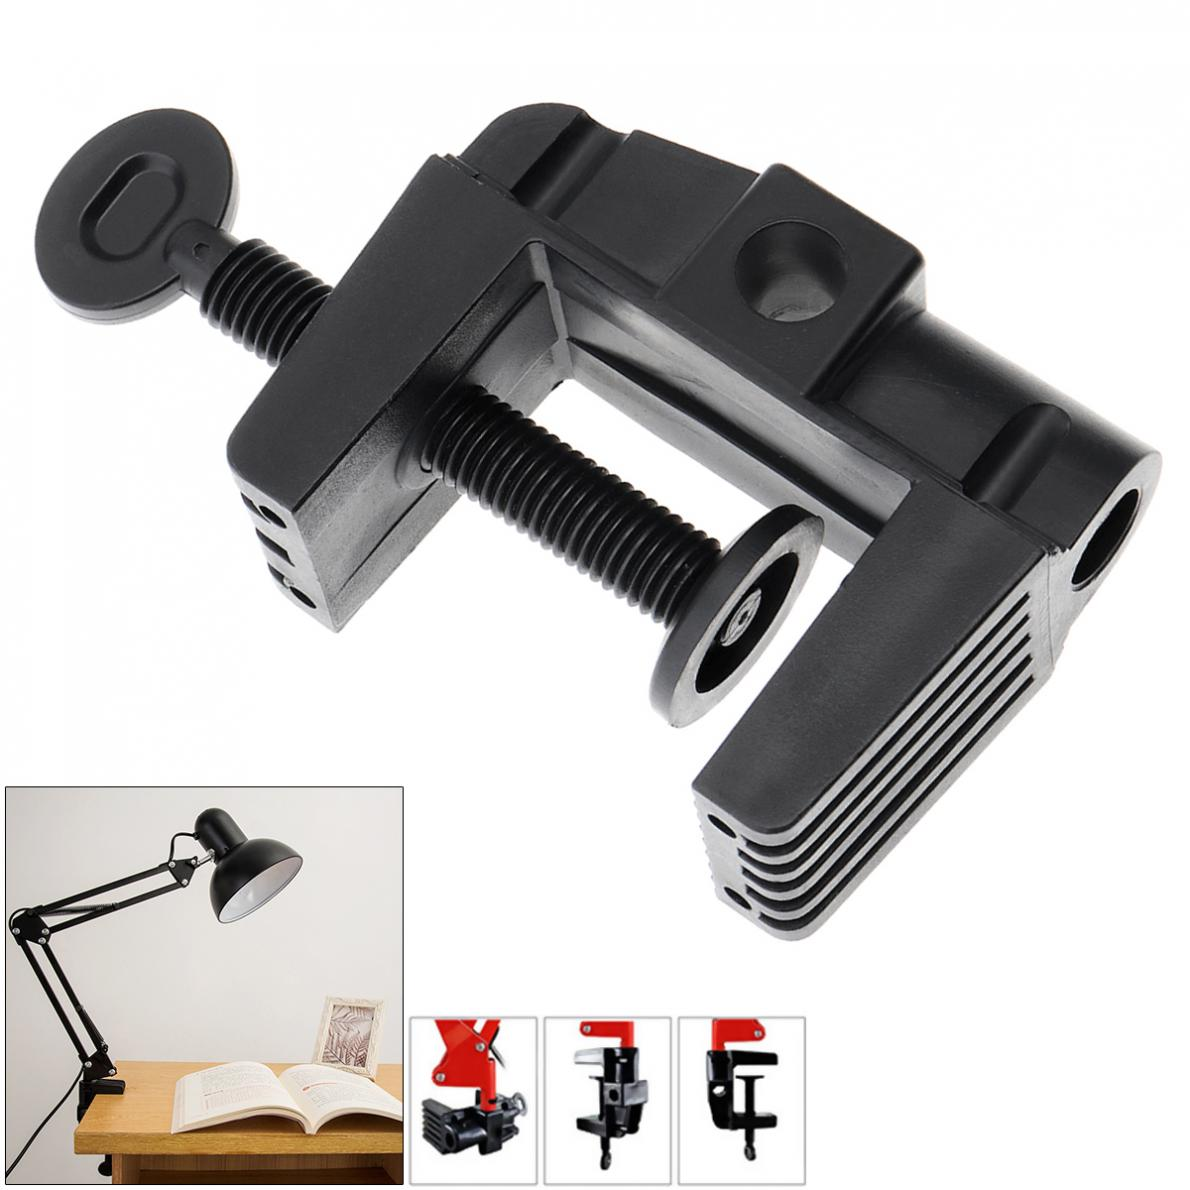 Universal Bracket Clamp Accessories DIY Fixed Metal Clip Fittings Screw Light Mounting Holder For Microphone Desk Lamp Lamp Clip